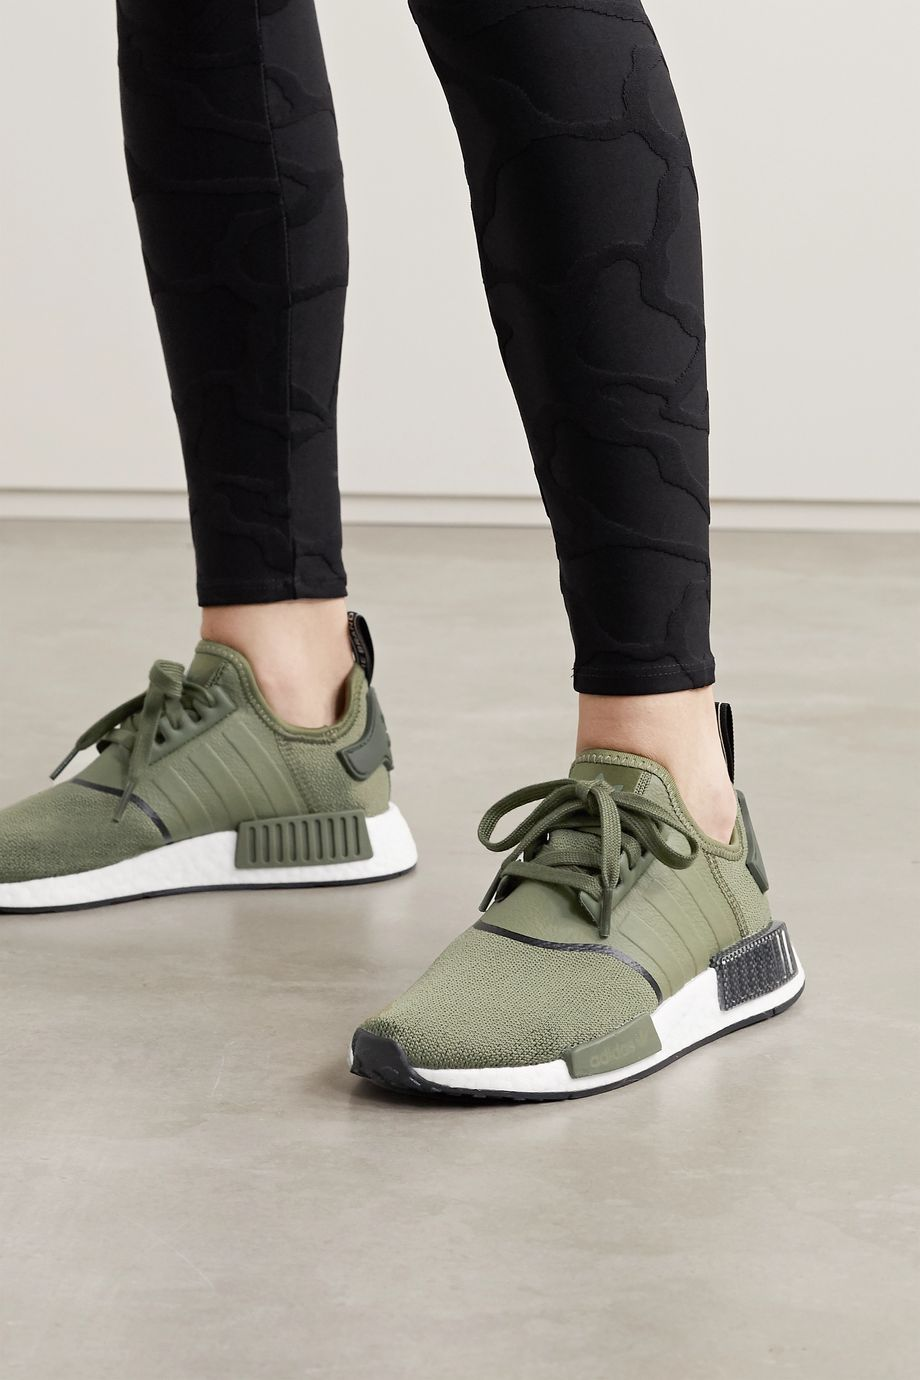 adidas Originals NMD R1 rubber-trimmed stretch-knit sneakers